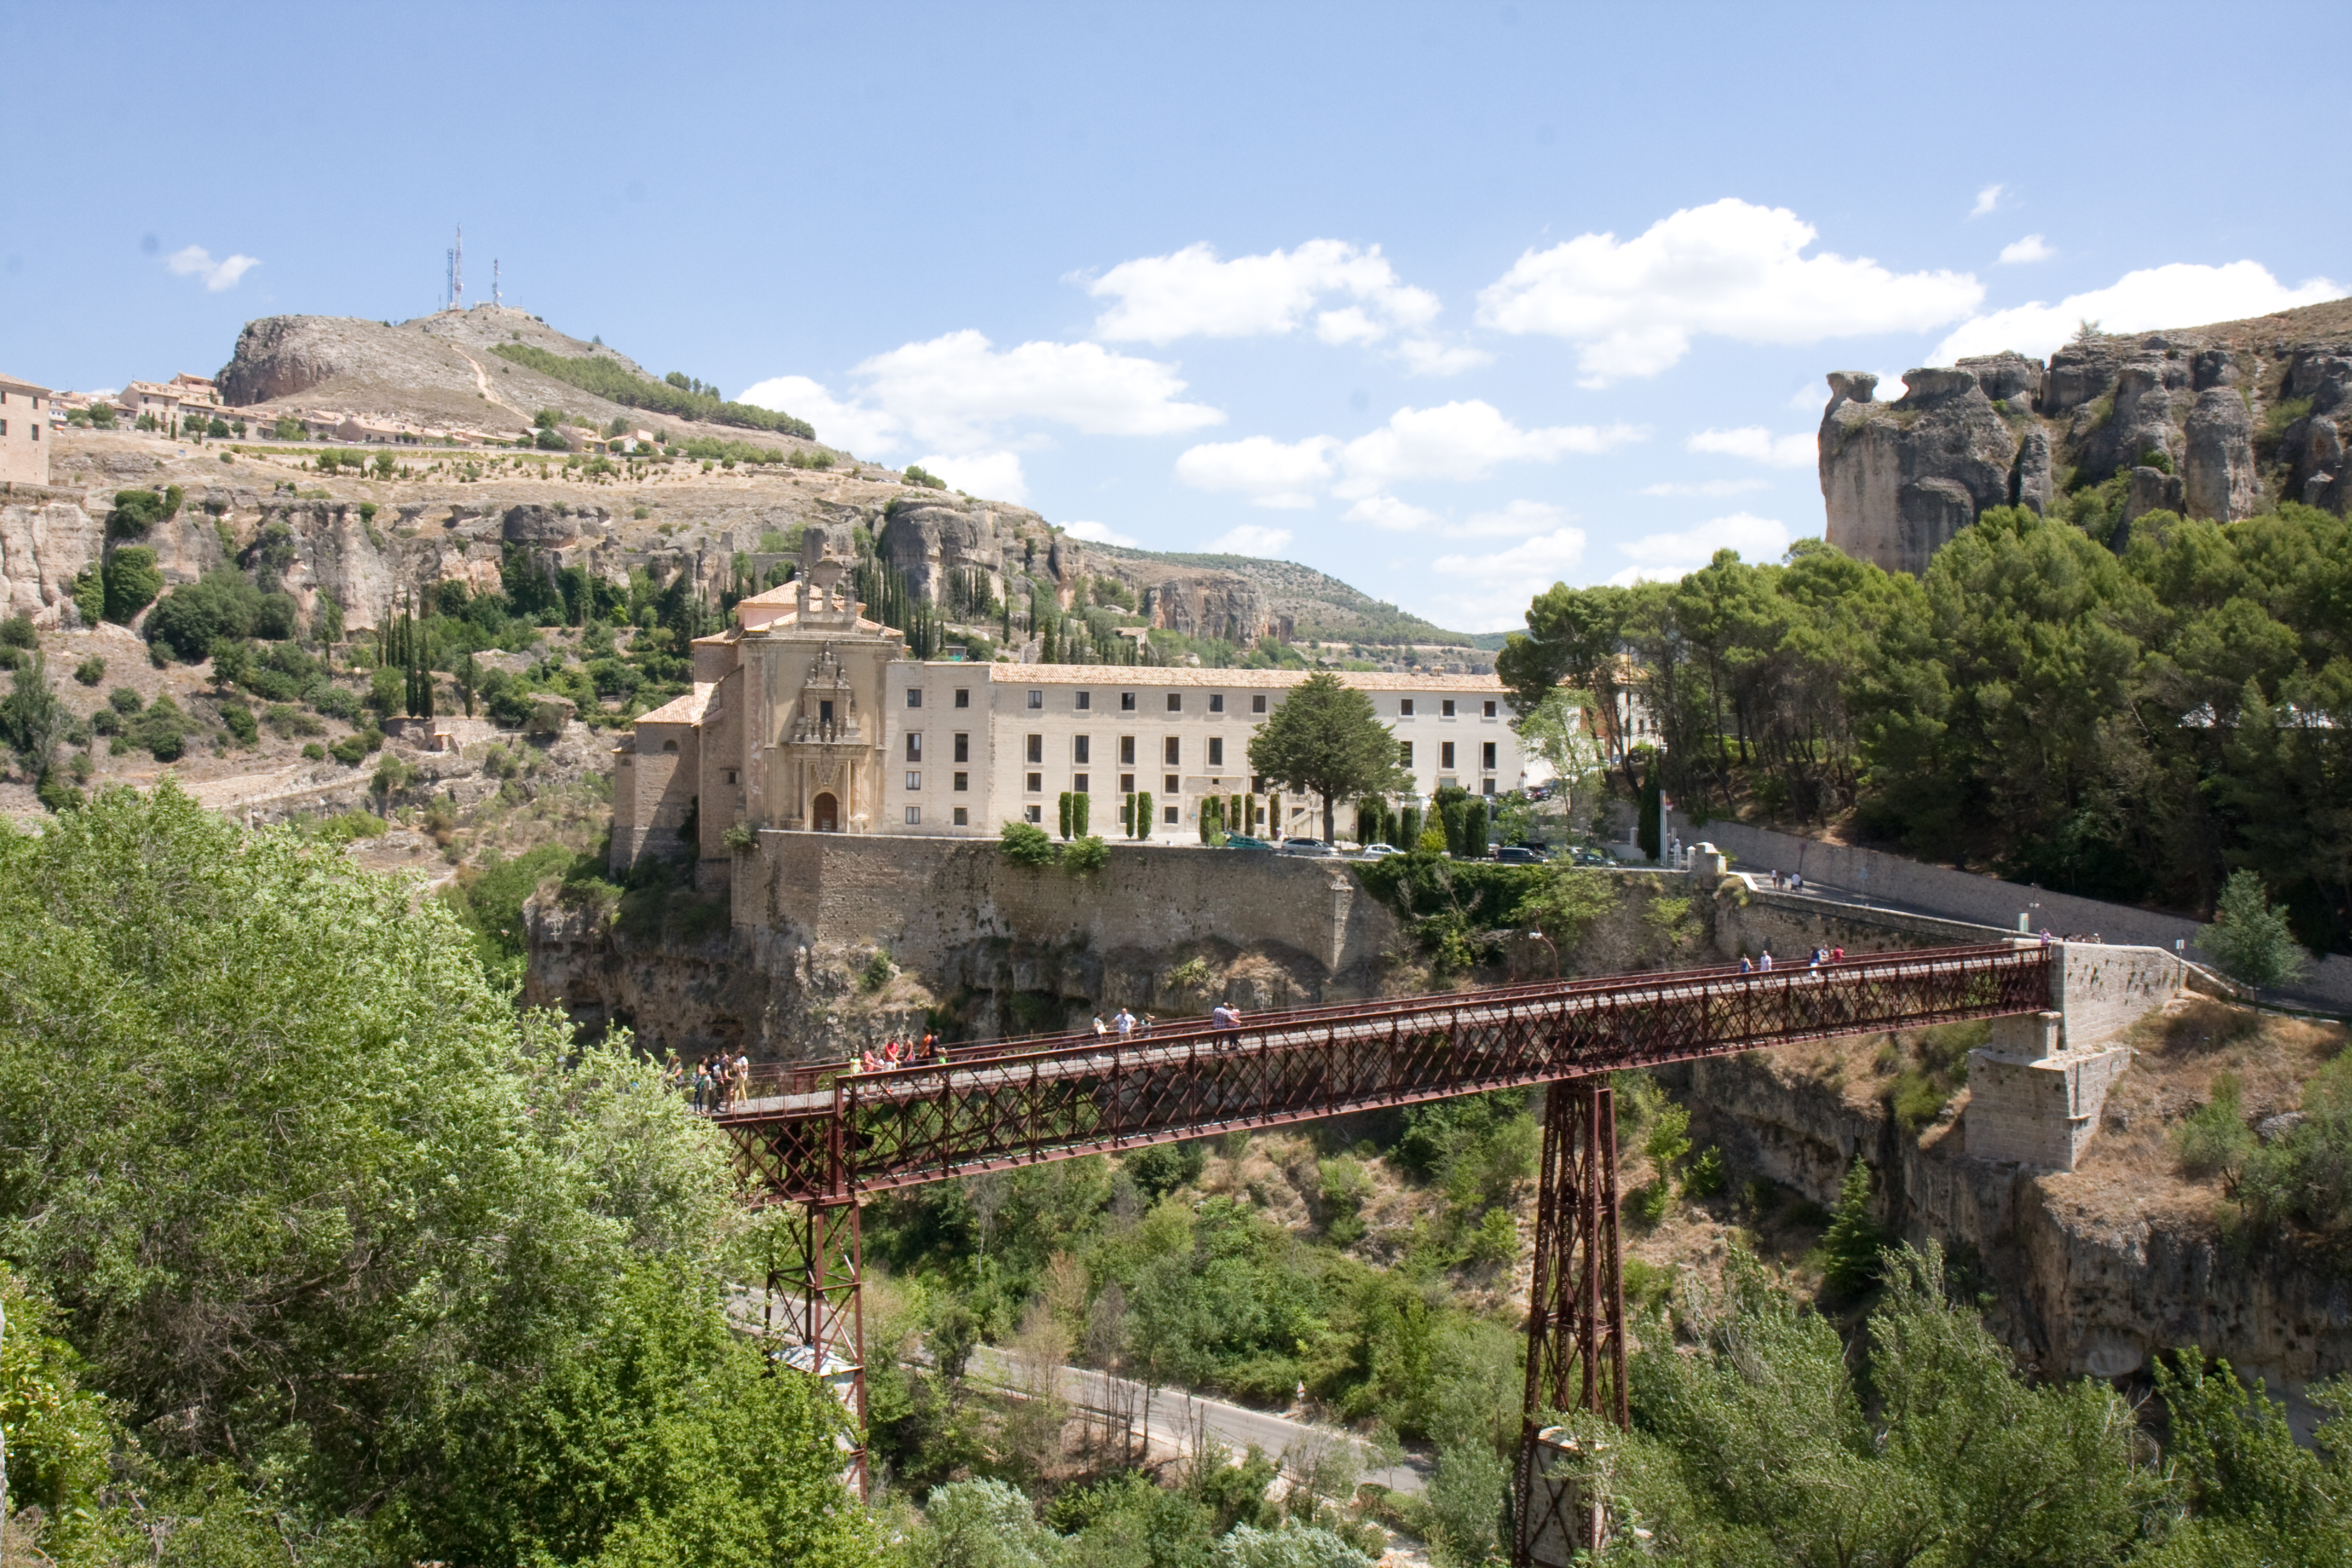 San Pablo Ca Weather >> Cuenca Spain Pictures and videos and news - CitiesTips.com